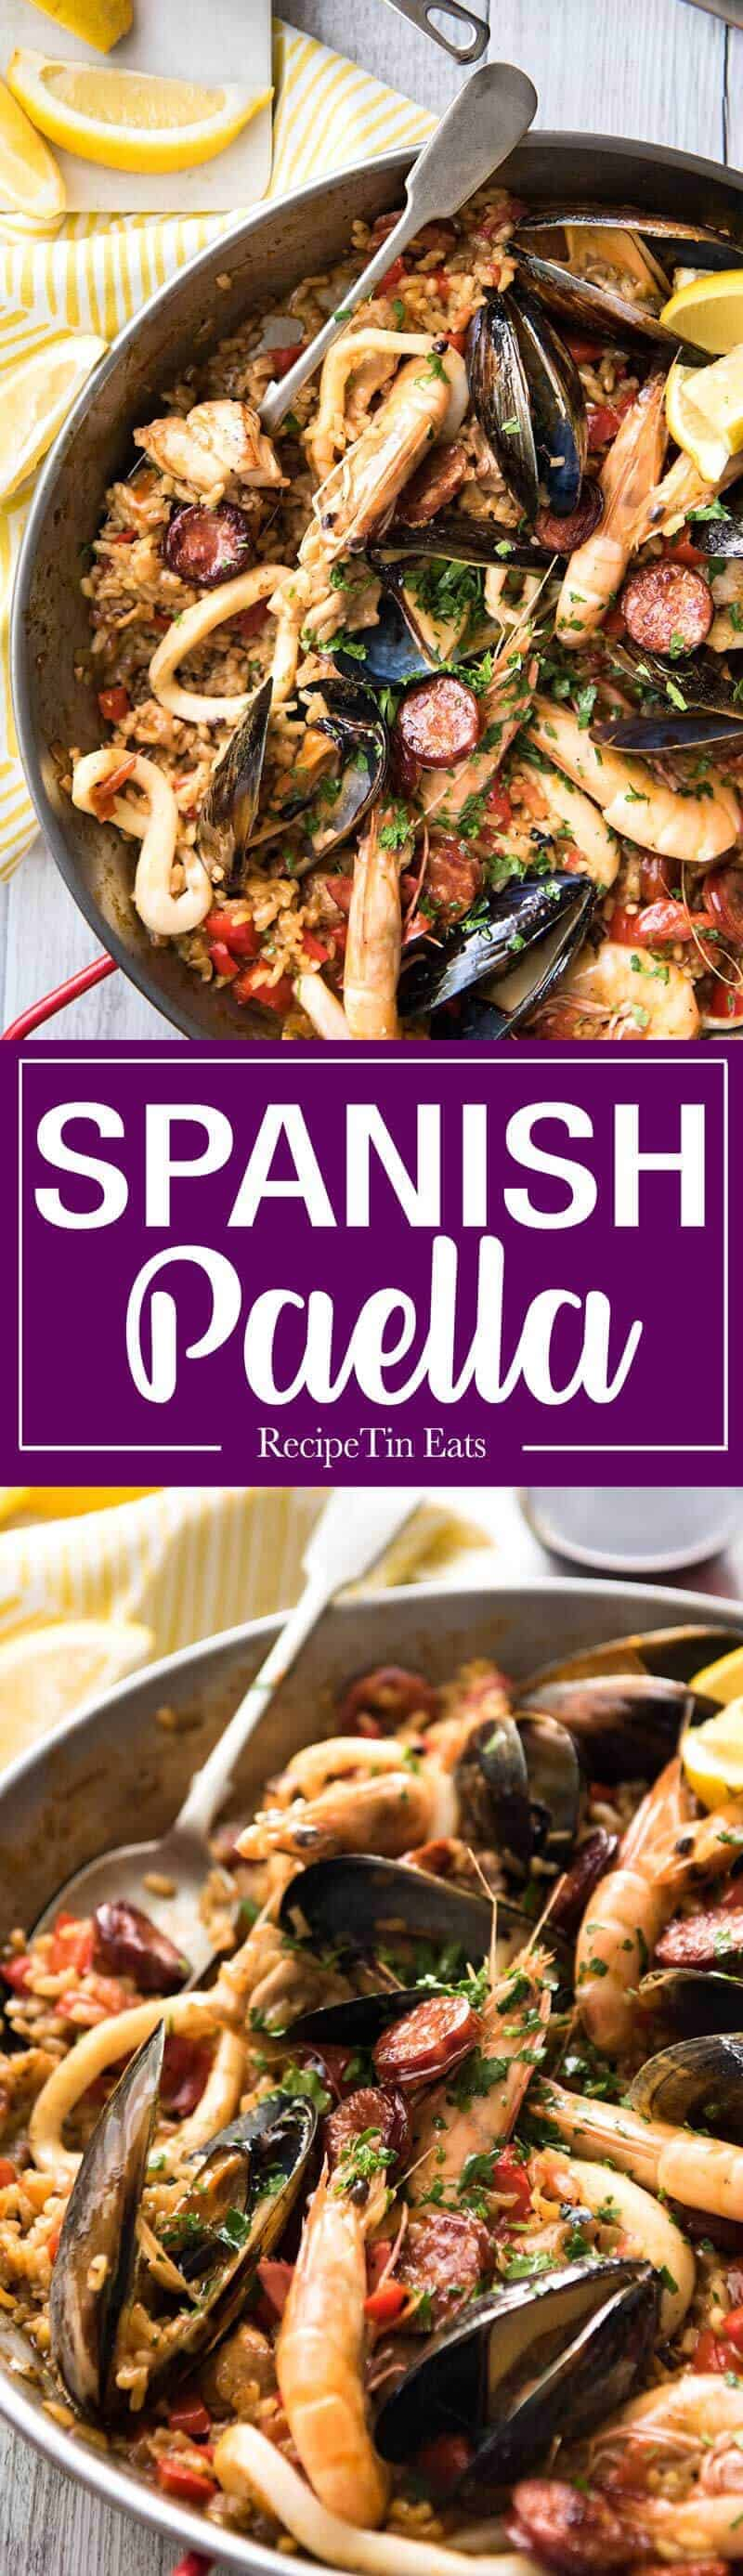 Spanish Paella - The right rice, right amount of liquid and the base seasonings is the foundation of a great Paella. The additions are up to you! This is a classic Chicken & Seafood Paella. recipetineats.com